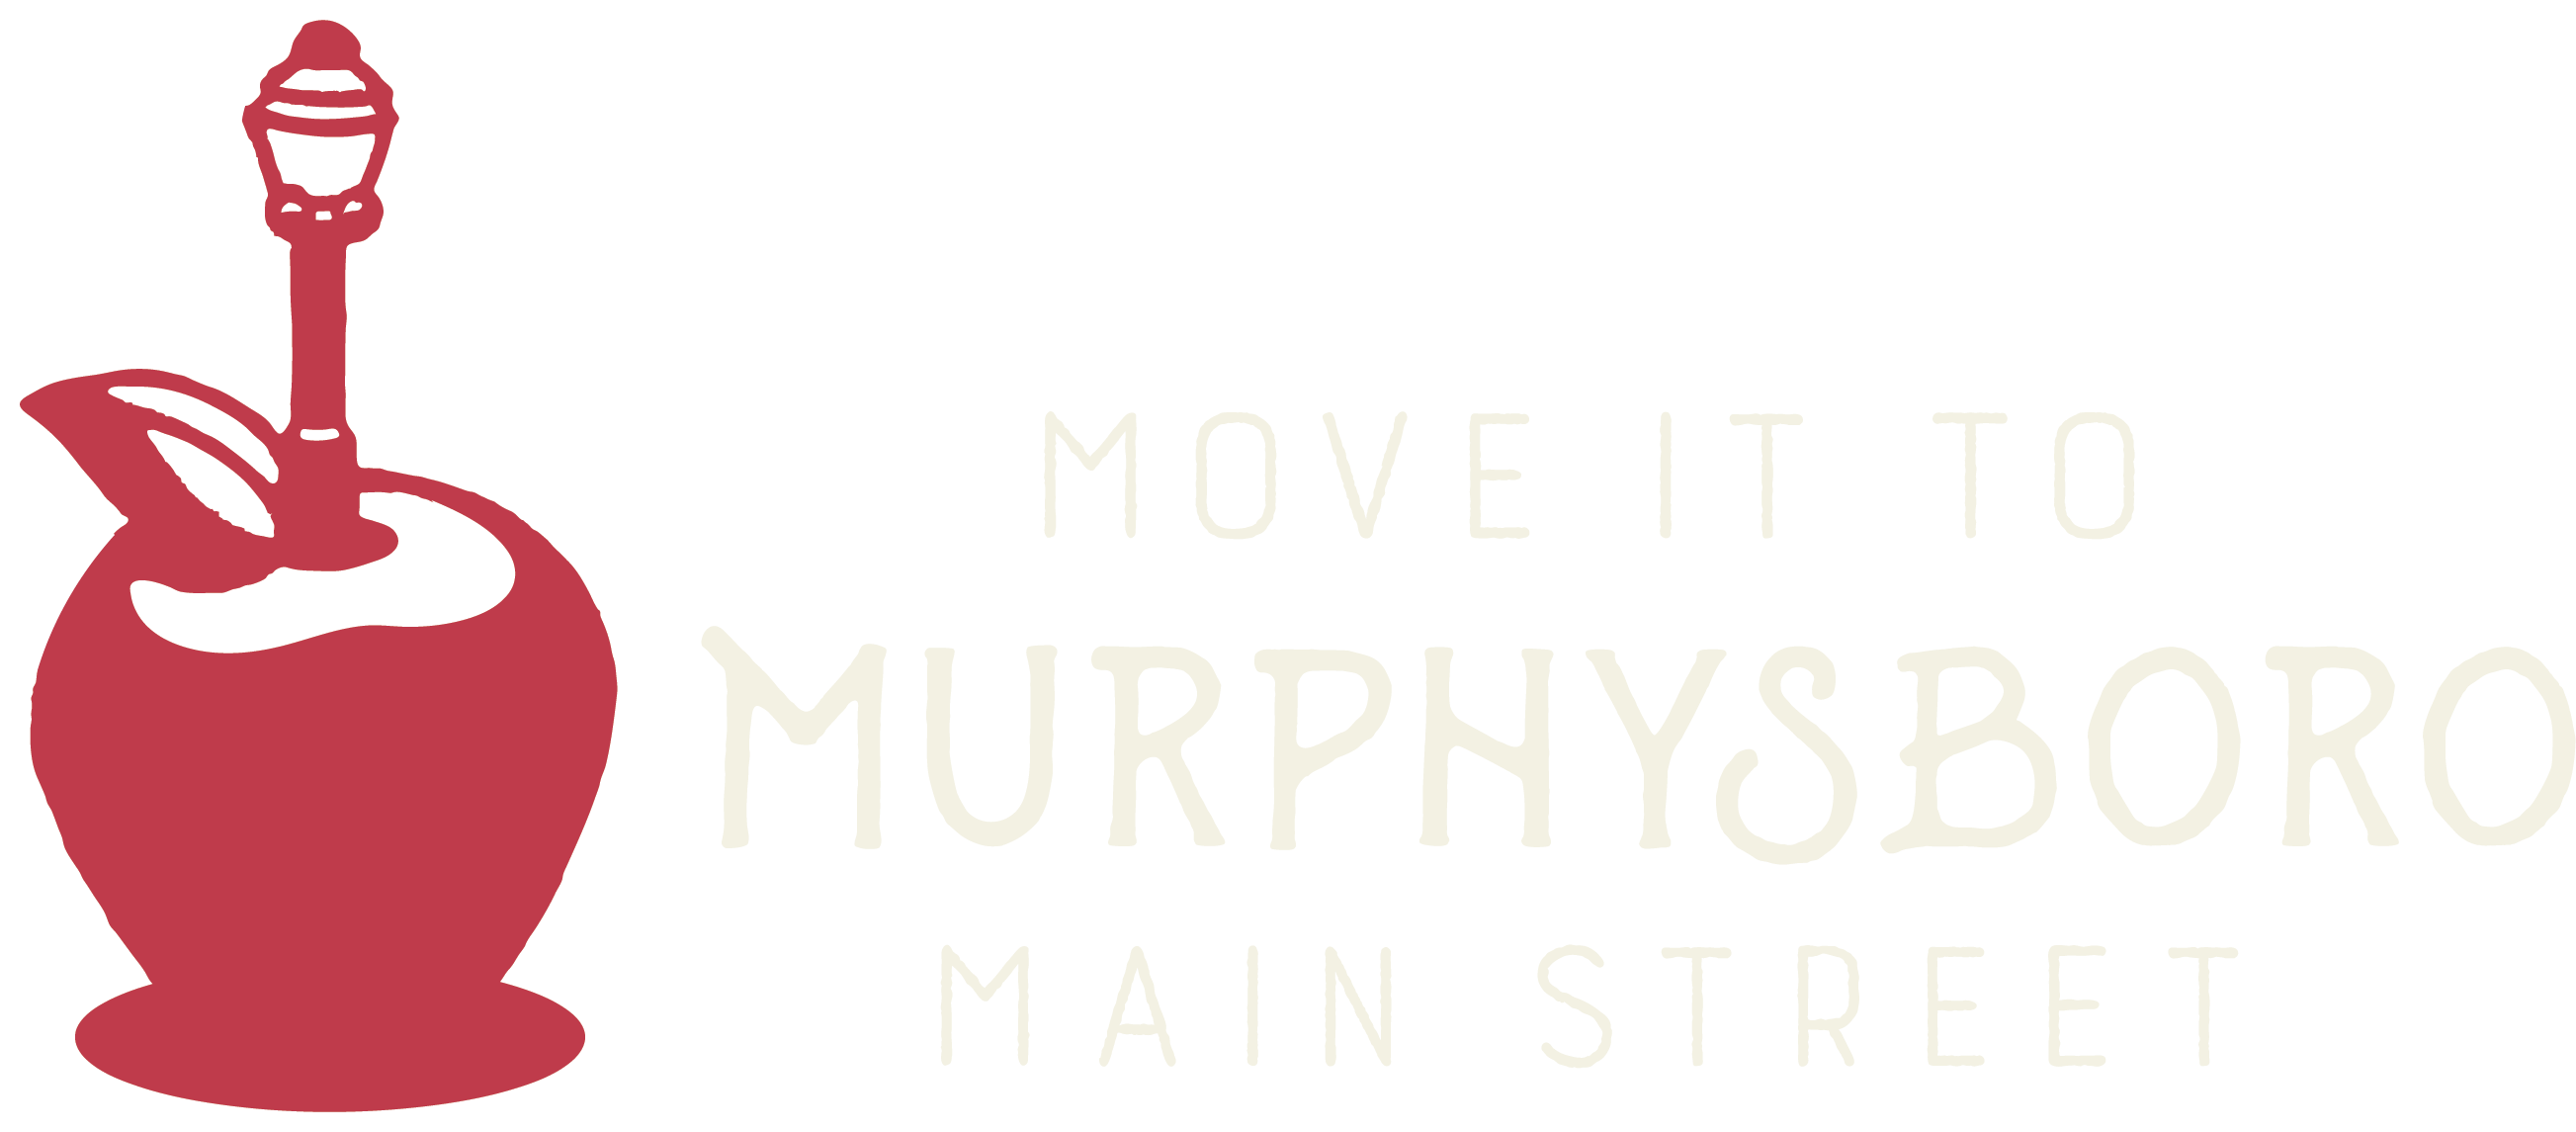 Move it to Main Street